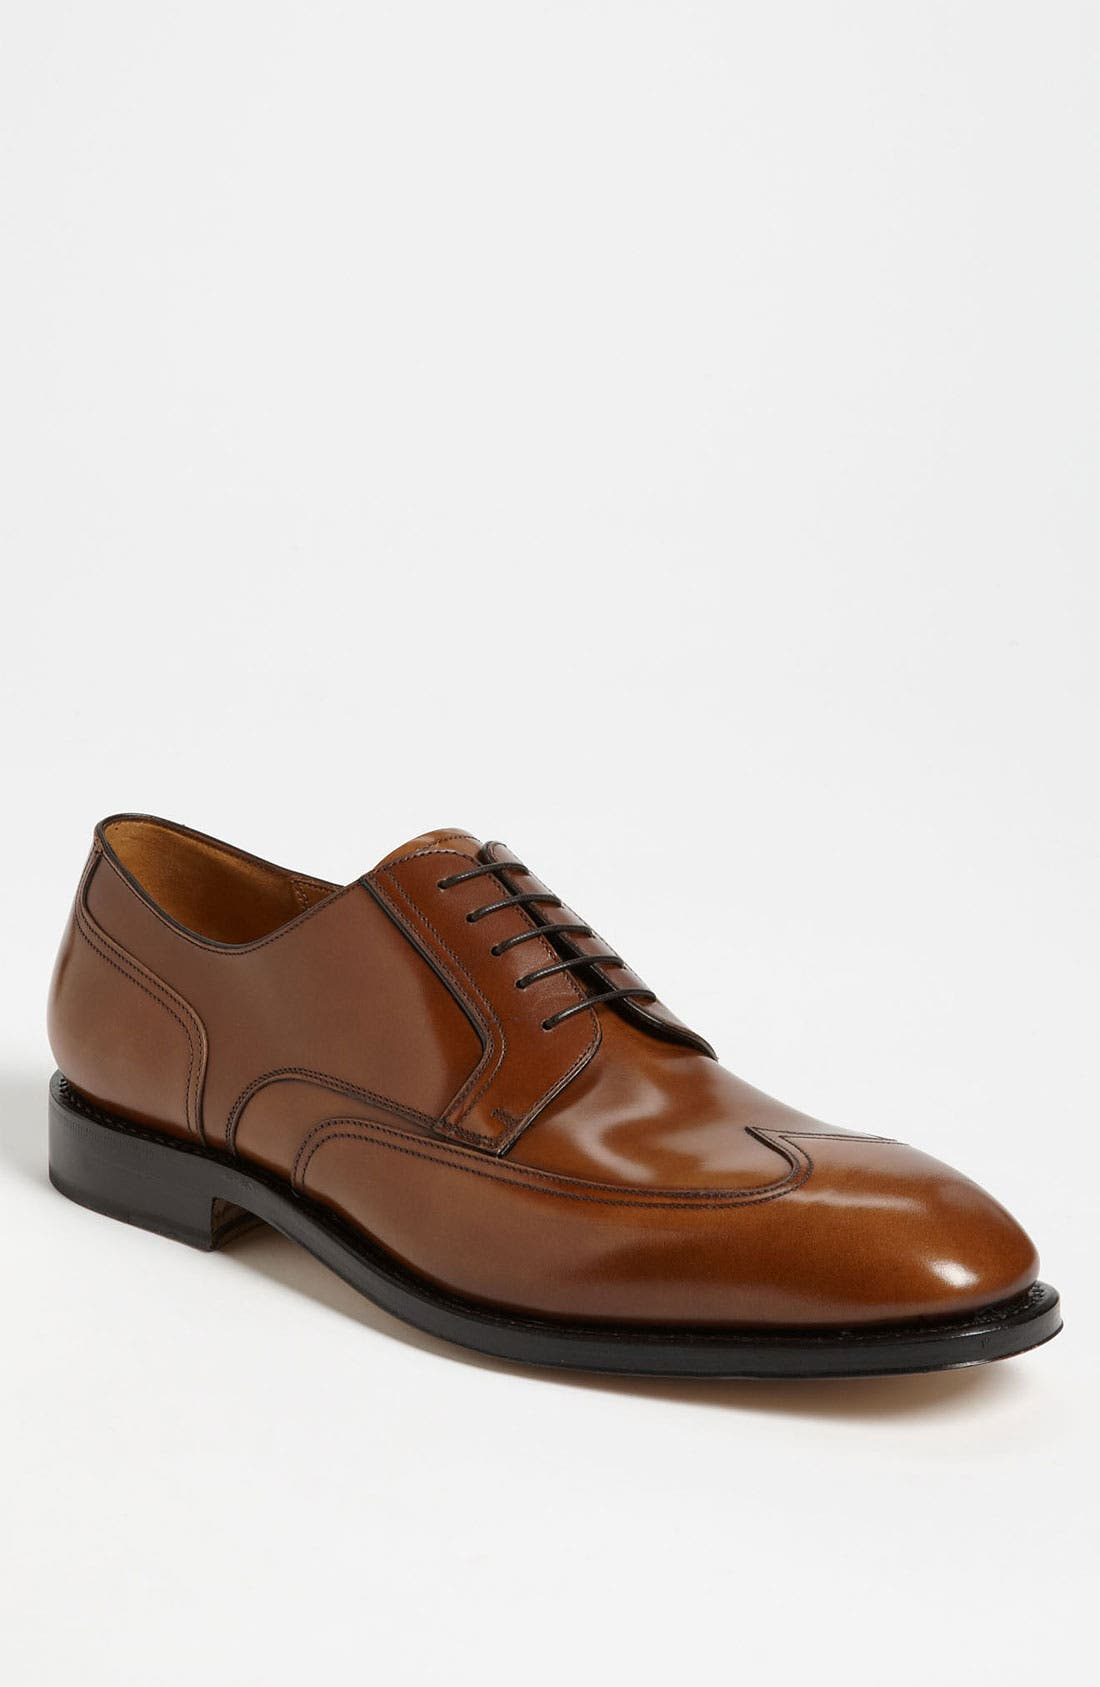 Alternate Image 1 Selected - Salvatore Ferragamo 'Candido' Wingtip